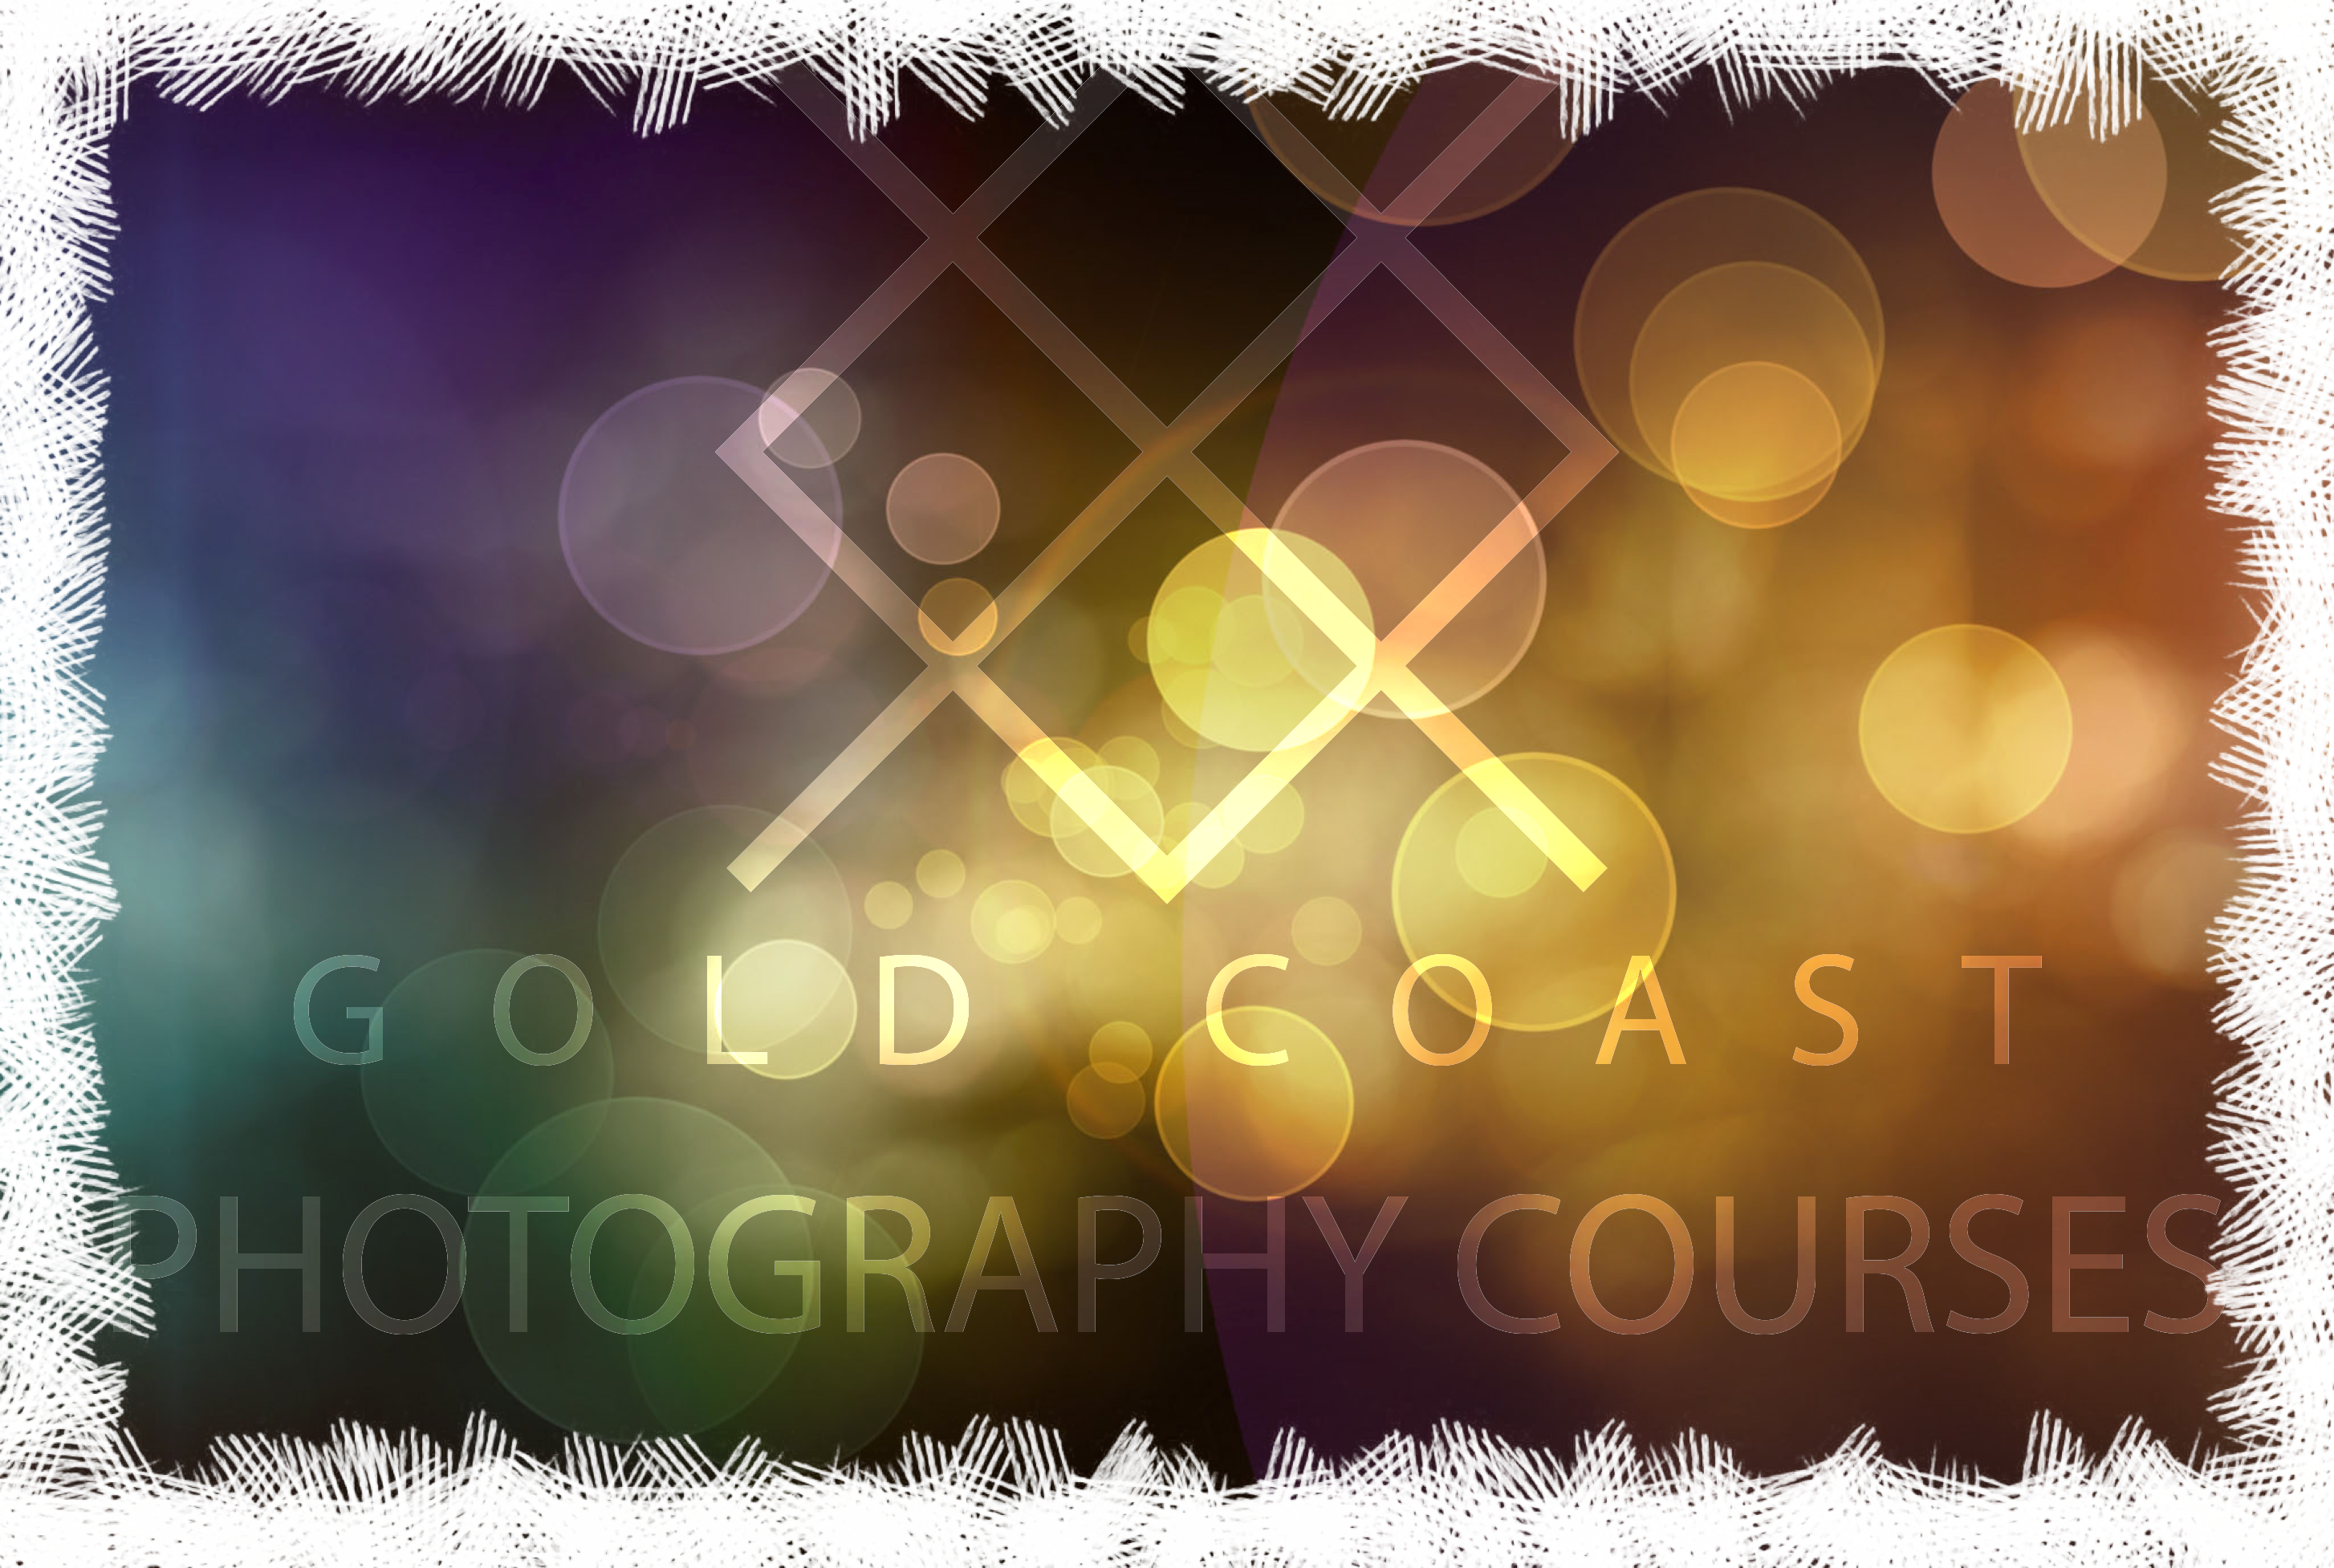 Gold Coast Photography Courses logo